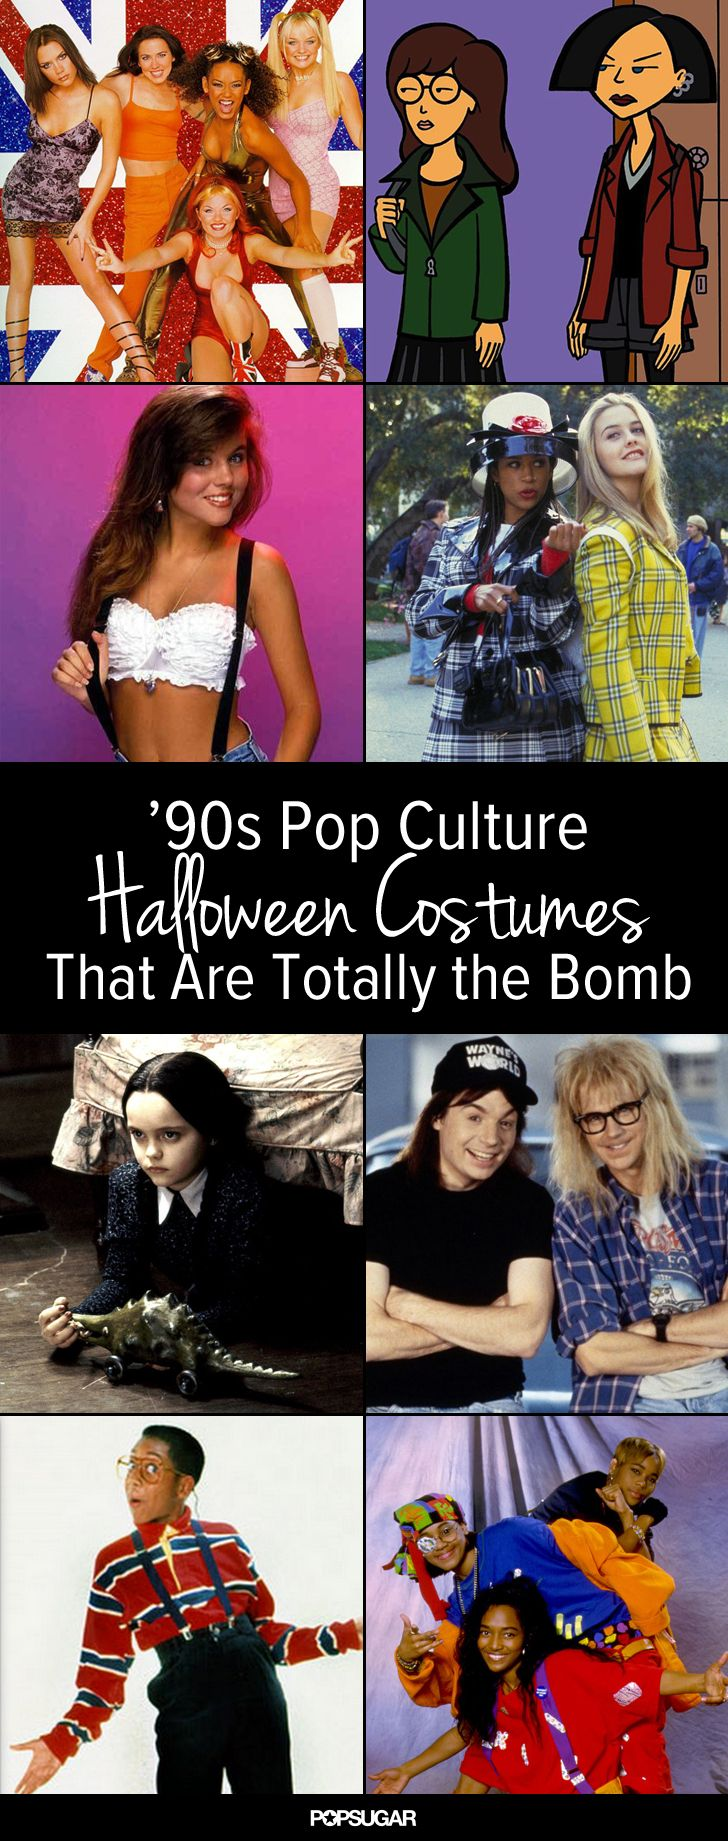 Impress your nostalgia friends this year with the most creative '90s costumes!